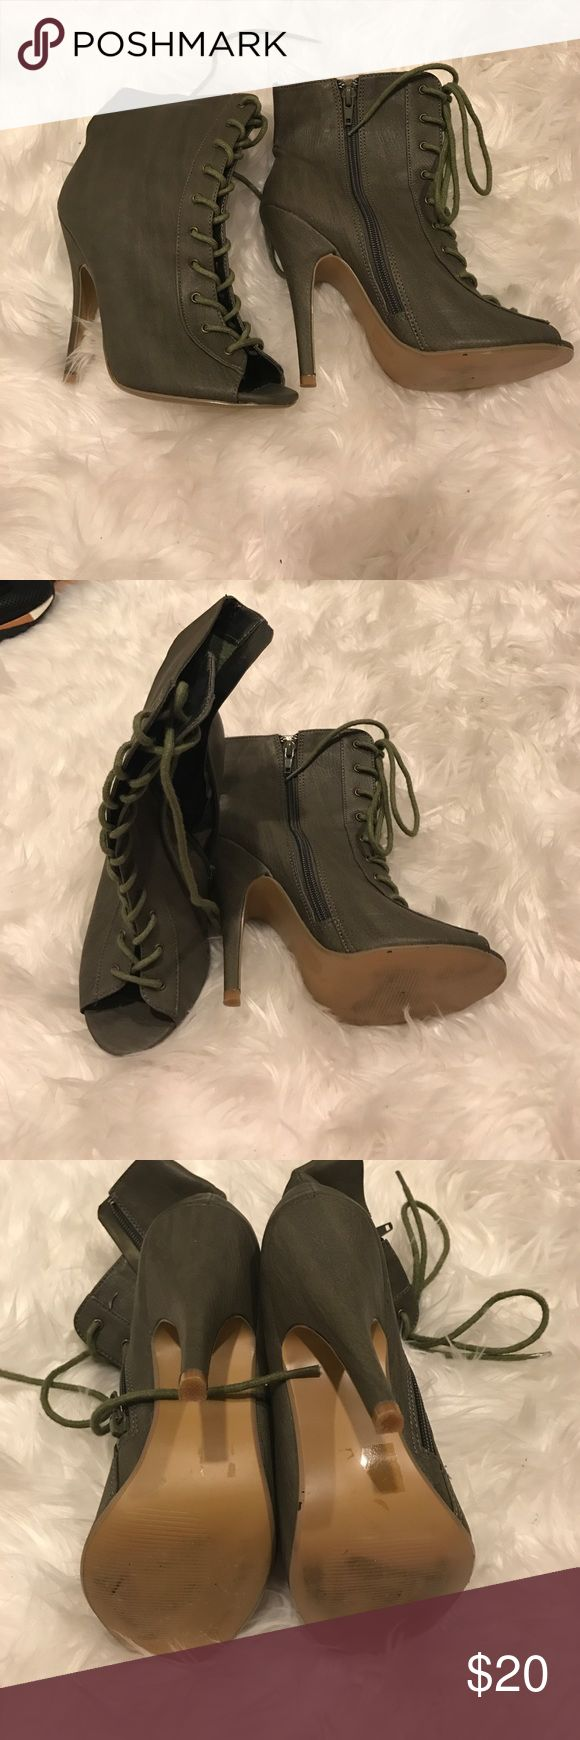 Olive Green Lace up Booties Olive Green Lace up Booties Shoes Lace Up Boots